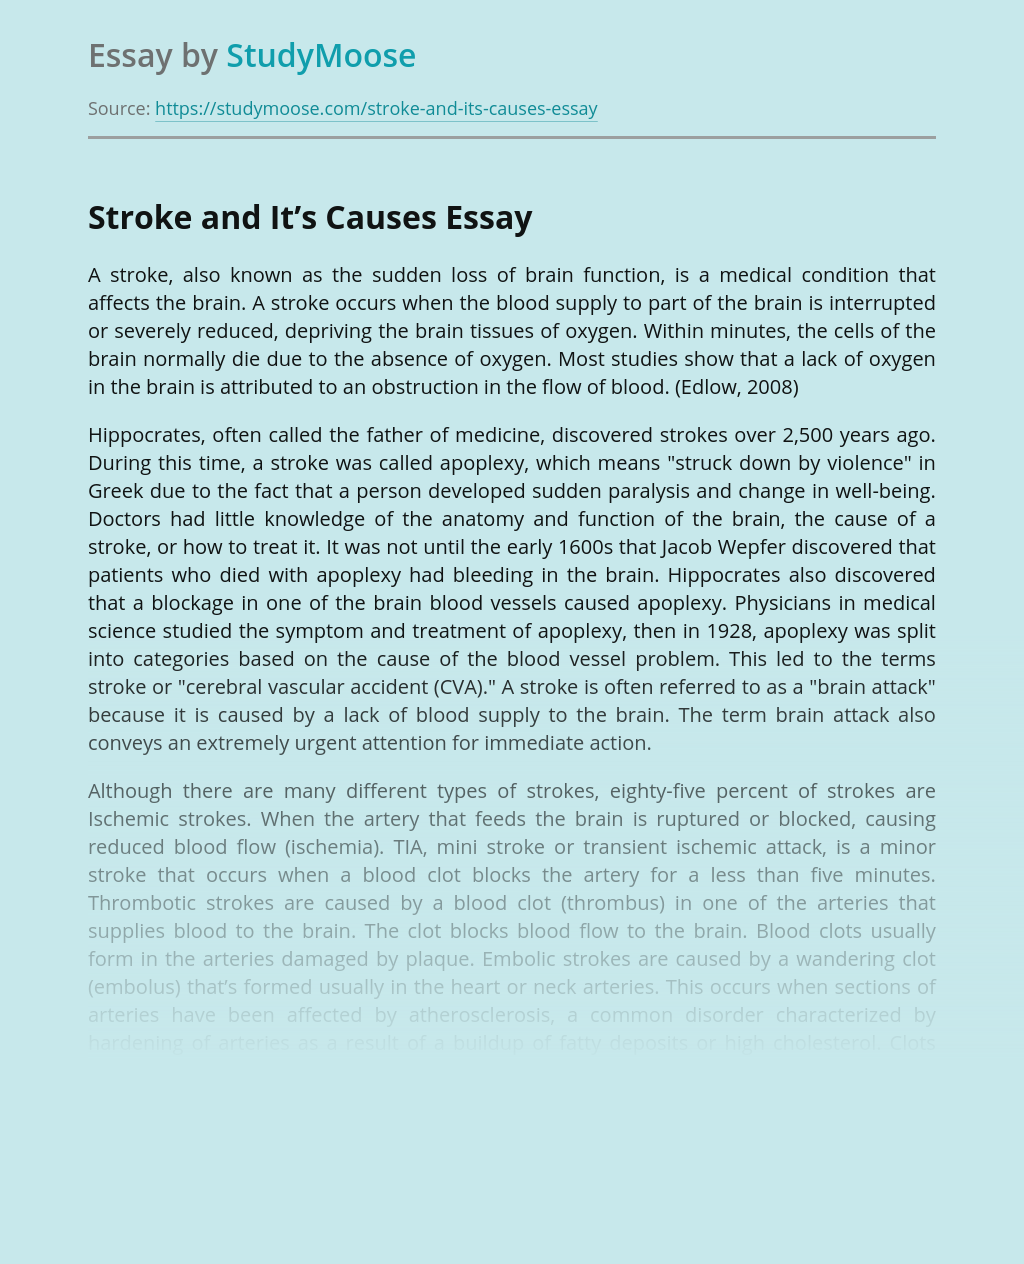 Stroke and It's Causes